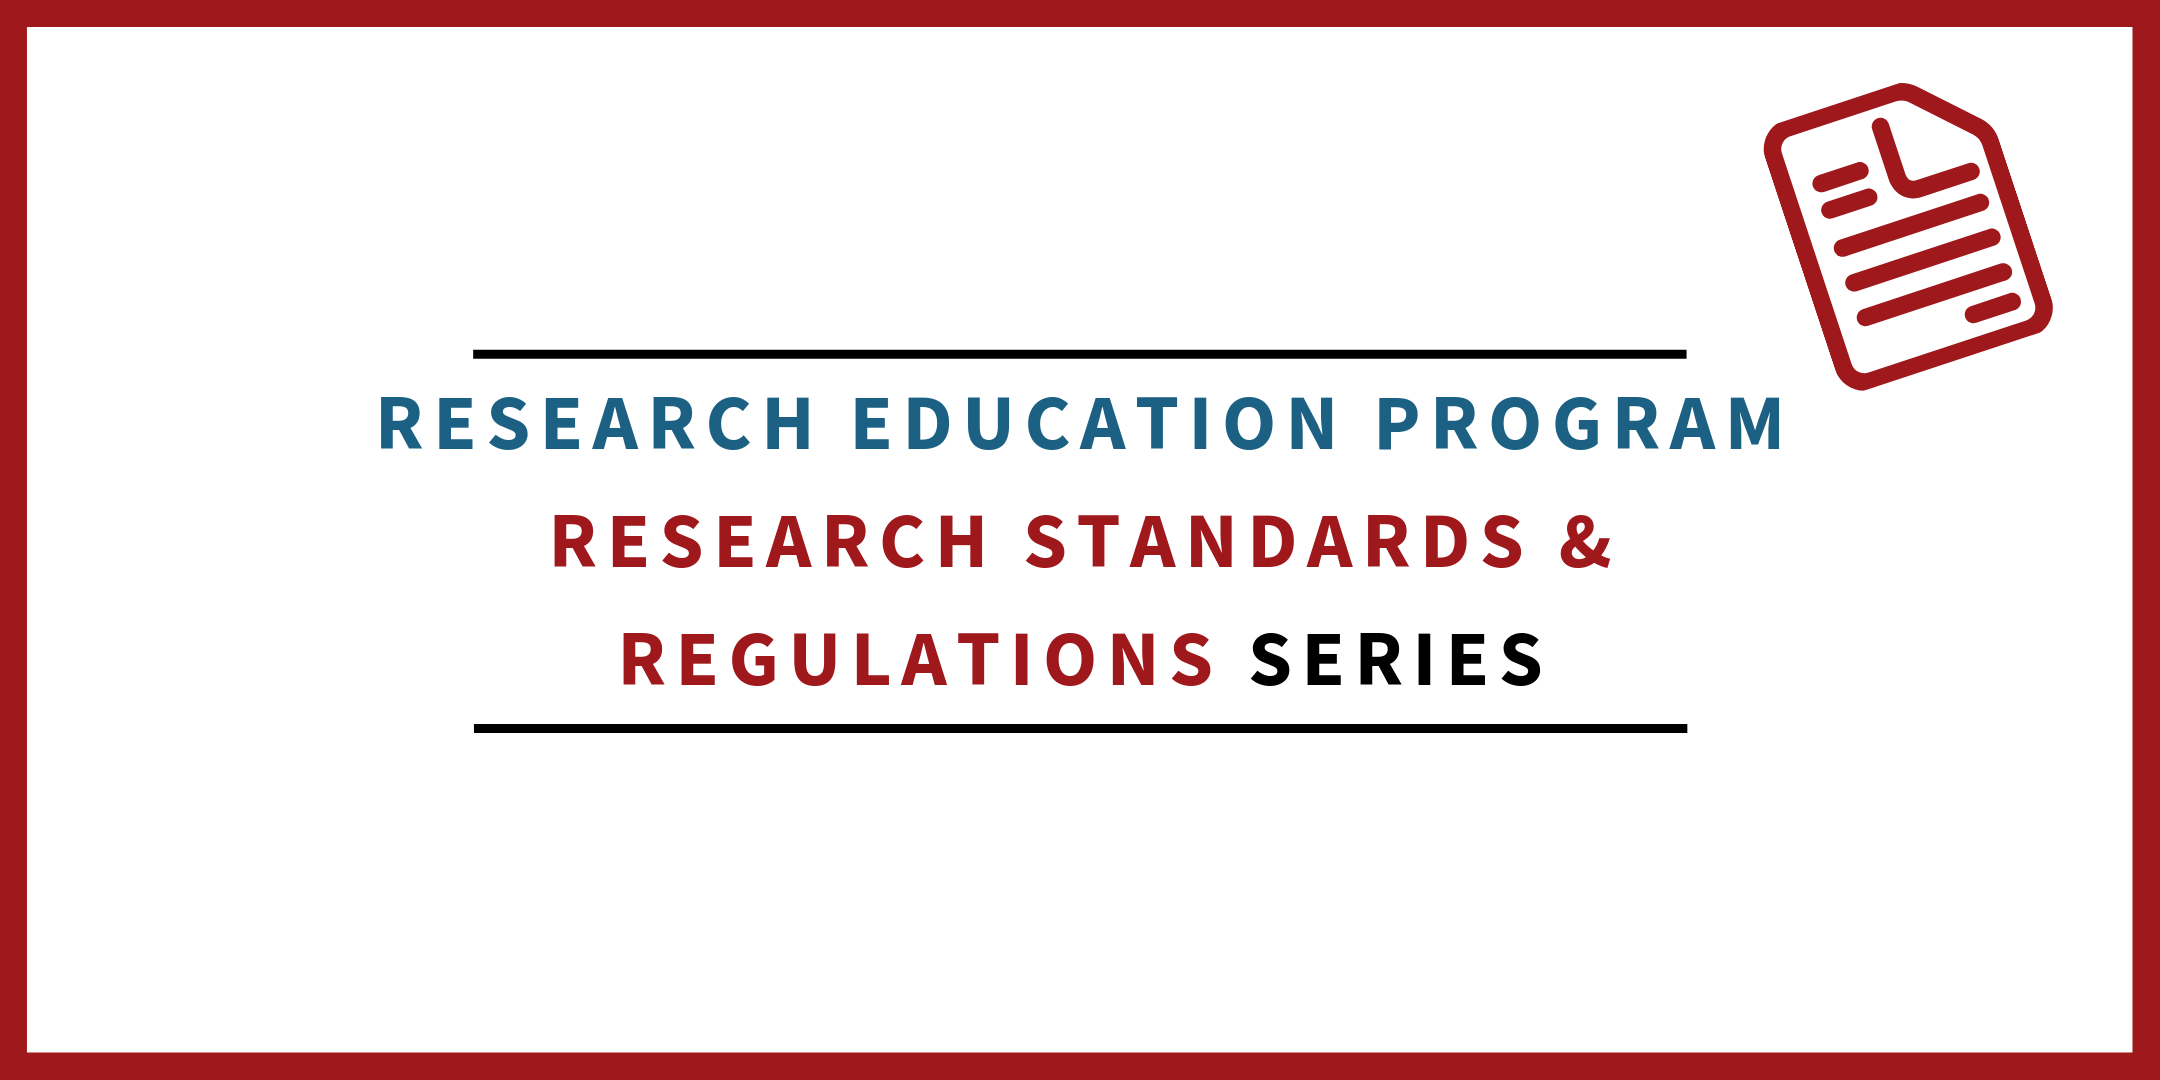 Research Regulations: Conducting Clinical Trials Under the Tri-Council Policy Statement